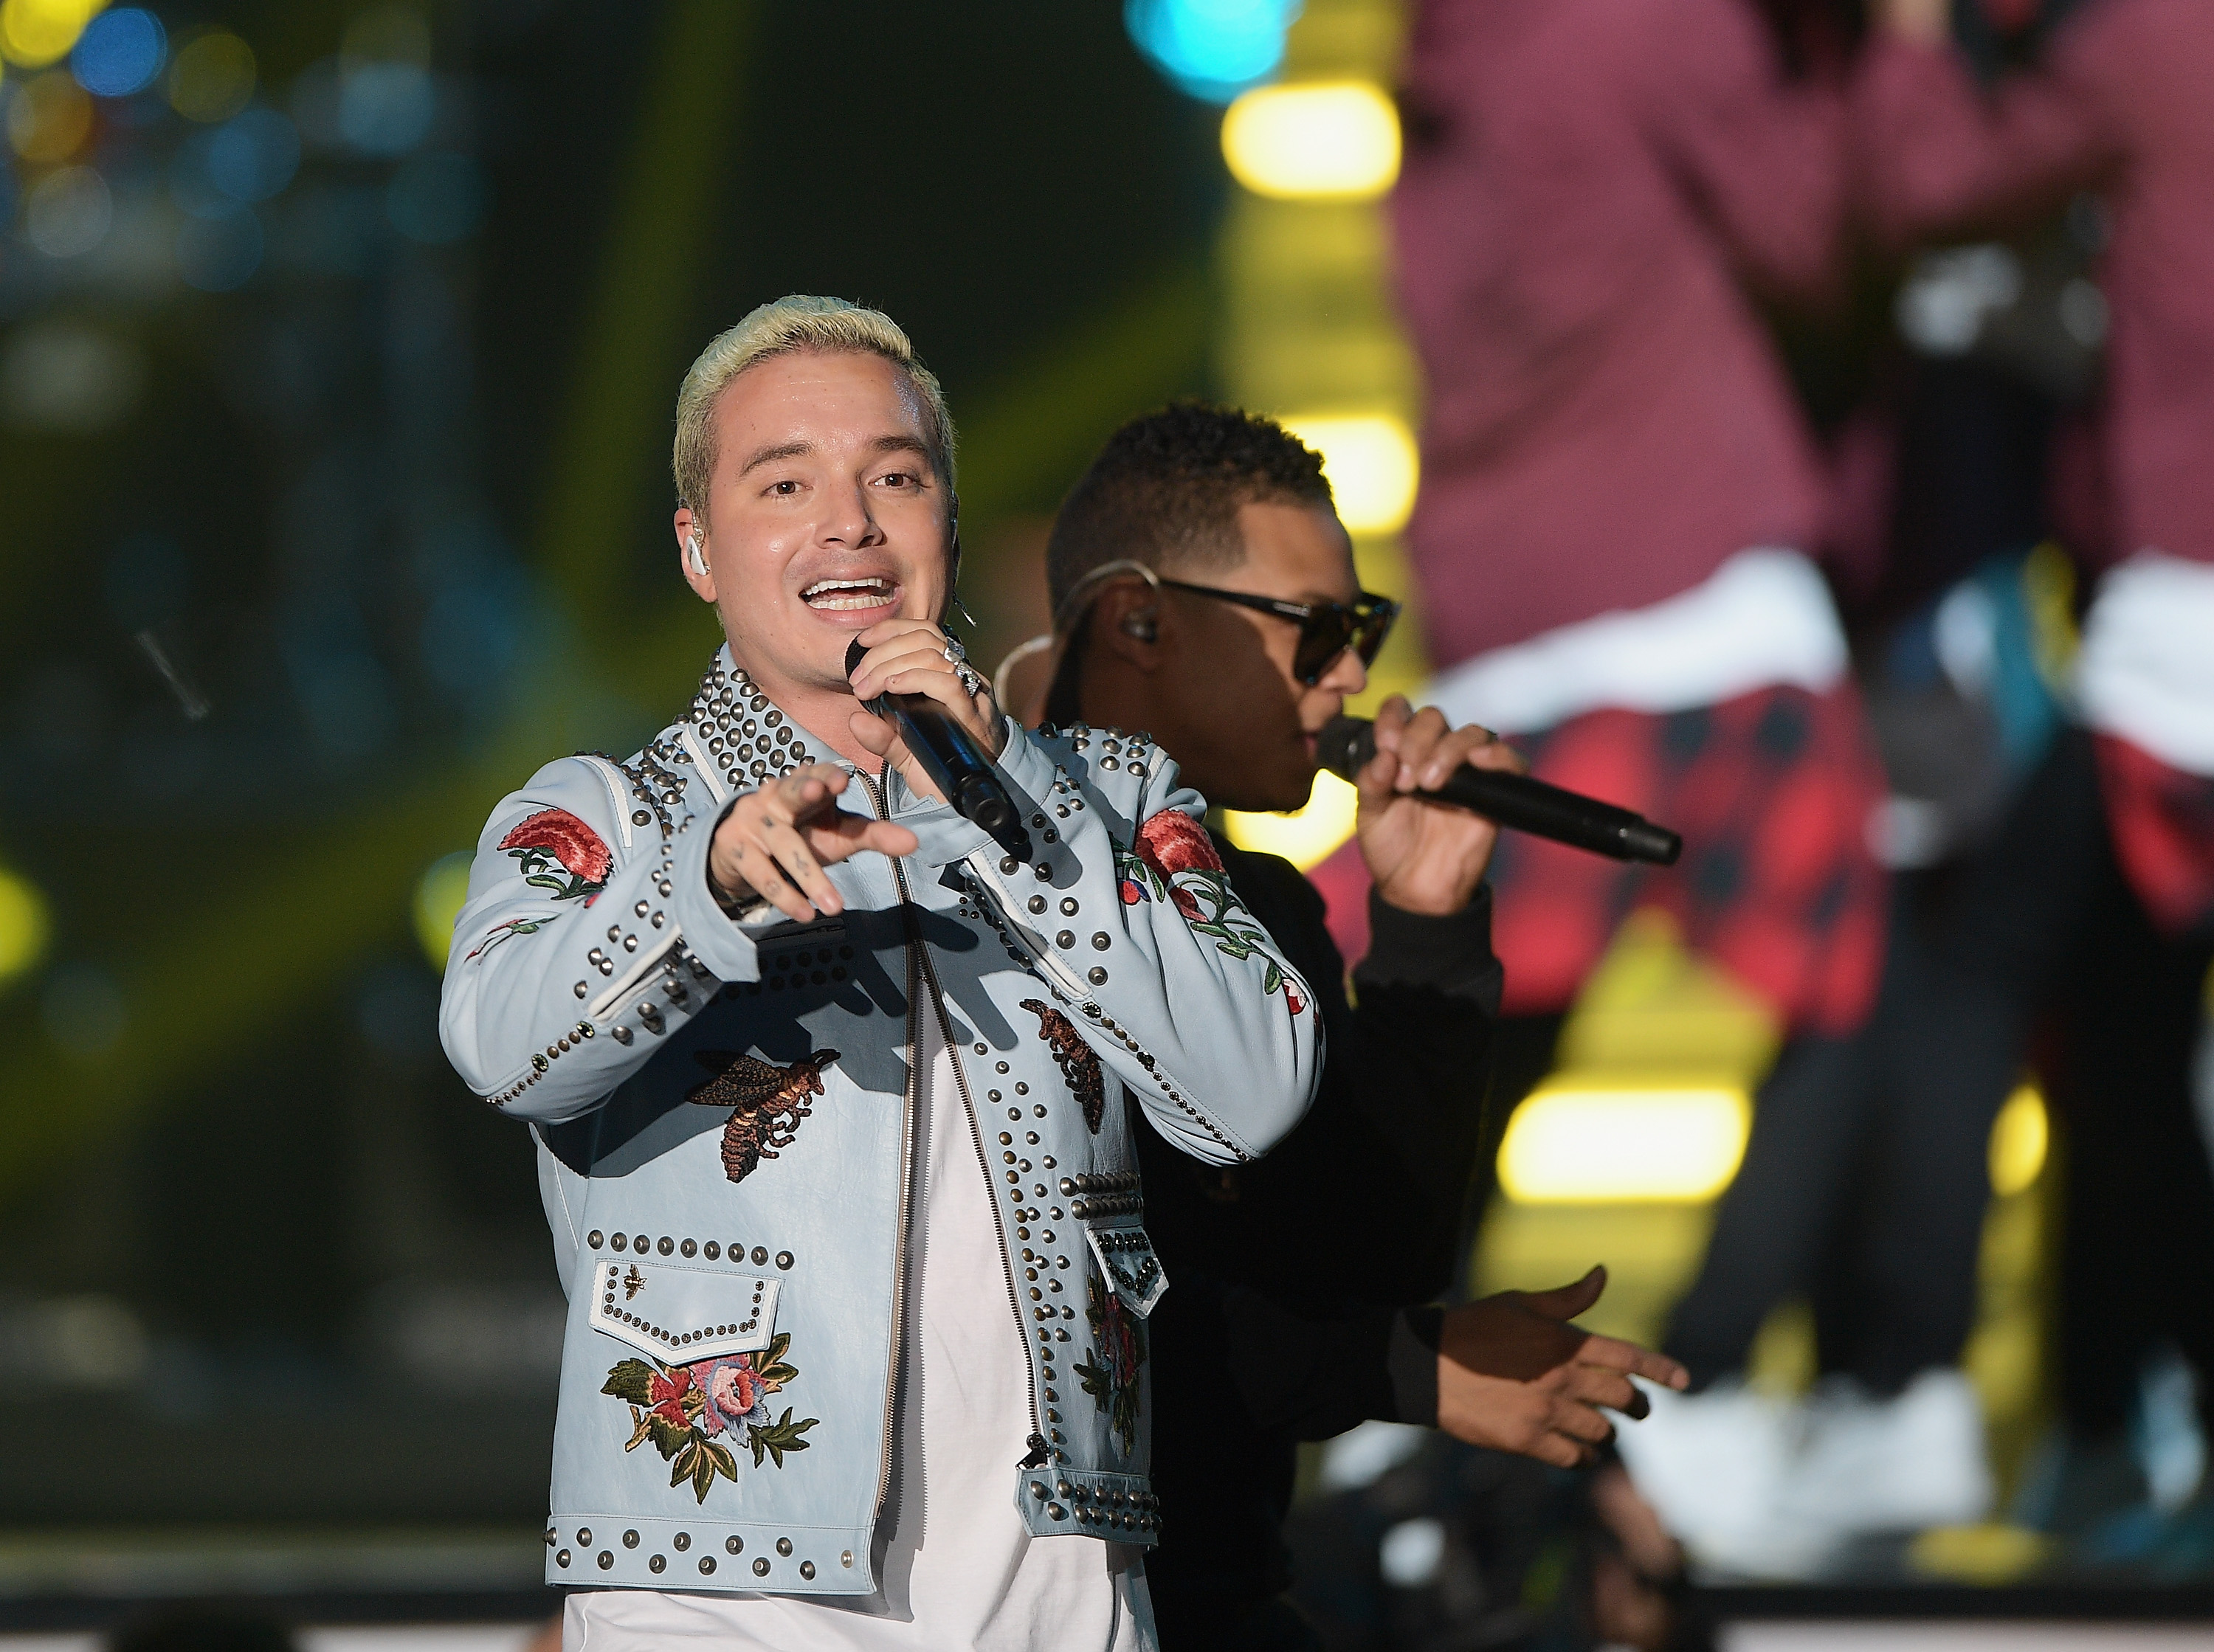 MIAMI, FL - APRIL 28: Fuego and J Balvin performs onstage at the Billboard Latin Music Awards at Bank United Center on April 28, 2016 in Miami, Florida. (Photo by Rodrigo Varela/Getty Images)